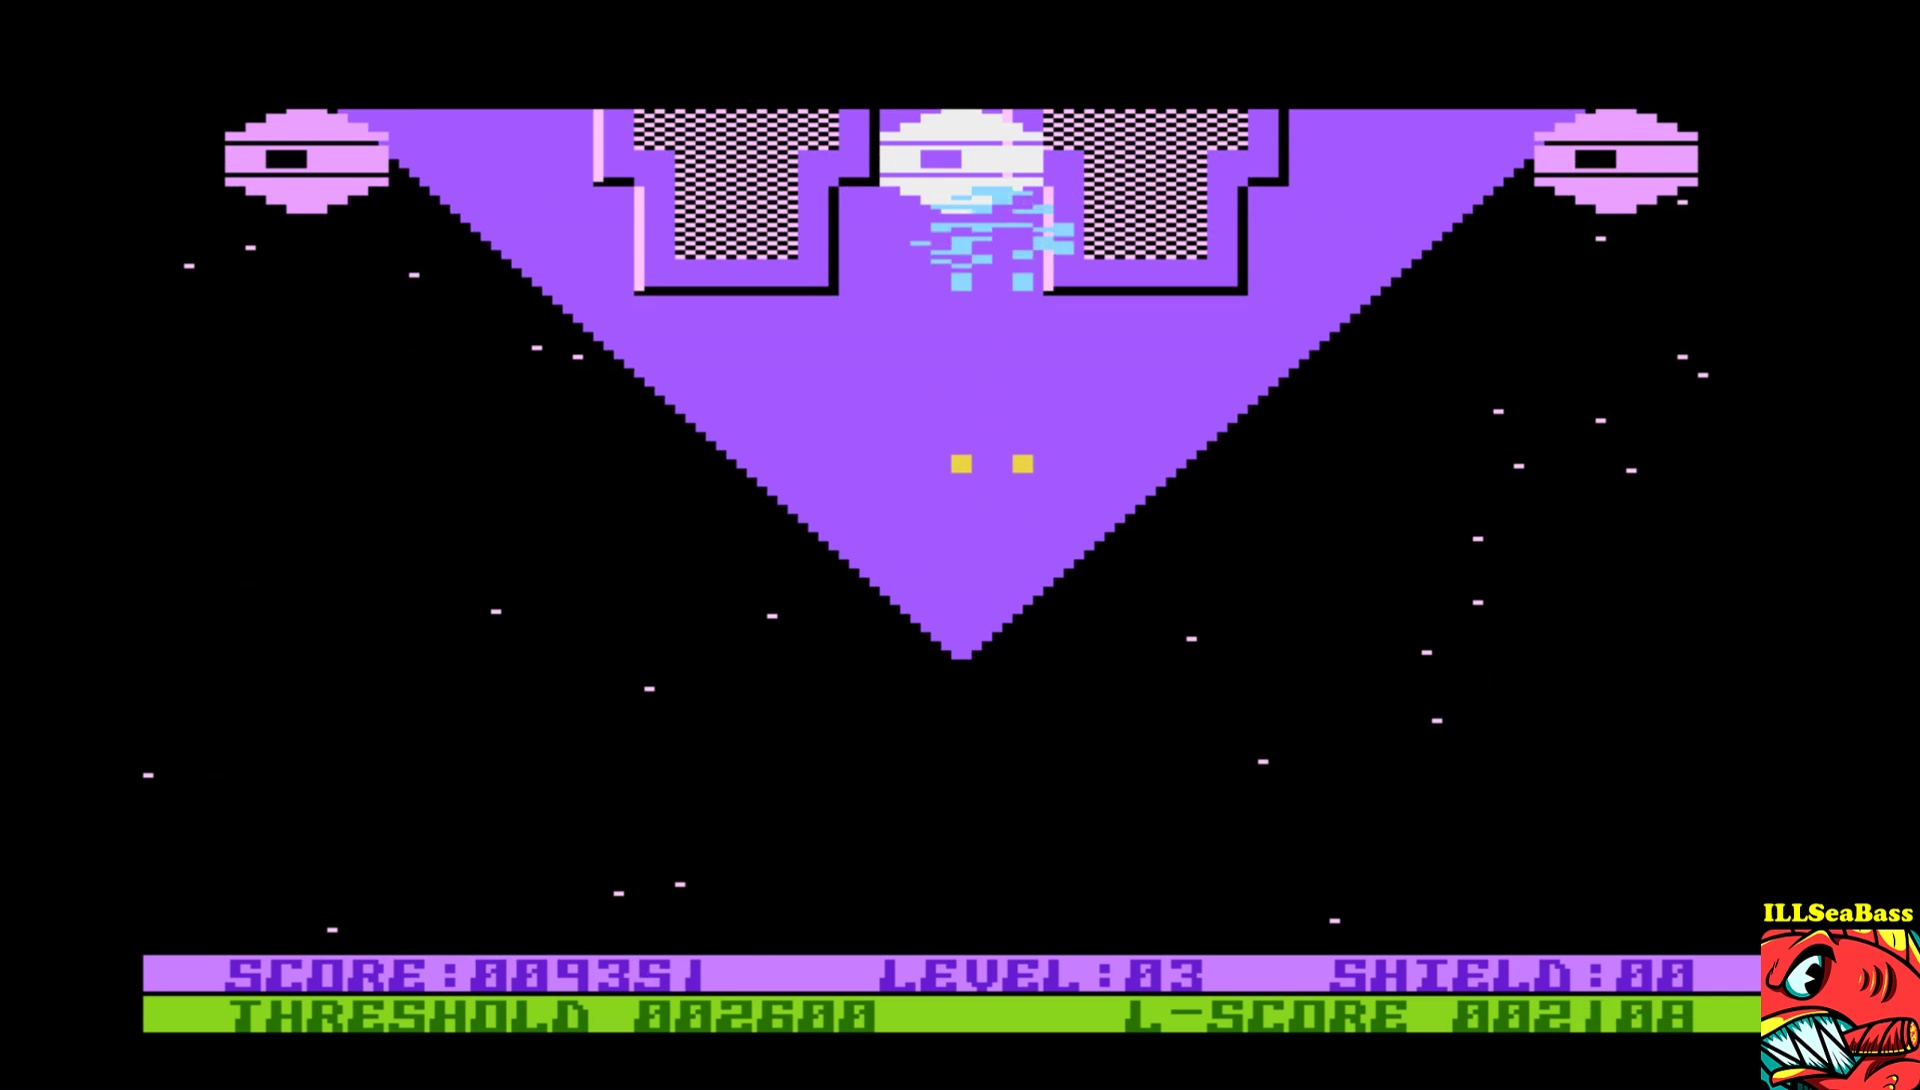 ILLSeaBass: Space Hawk (Atari 400/800/XL/XE Emulated) 9,351 points on 2017-06-10 22:01:46